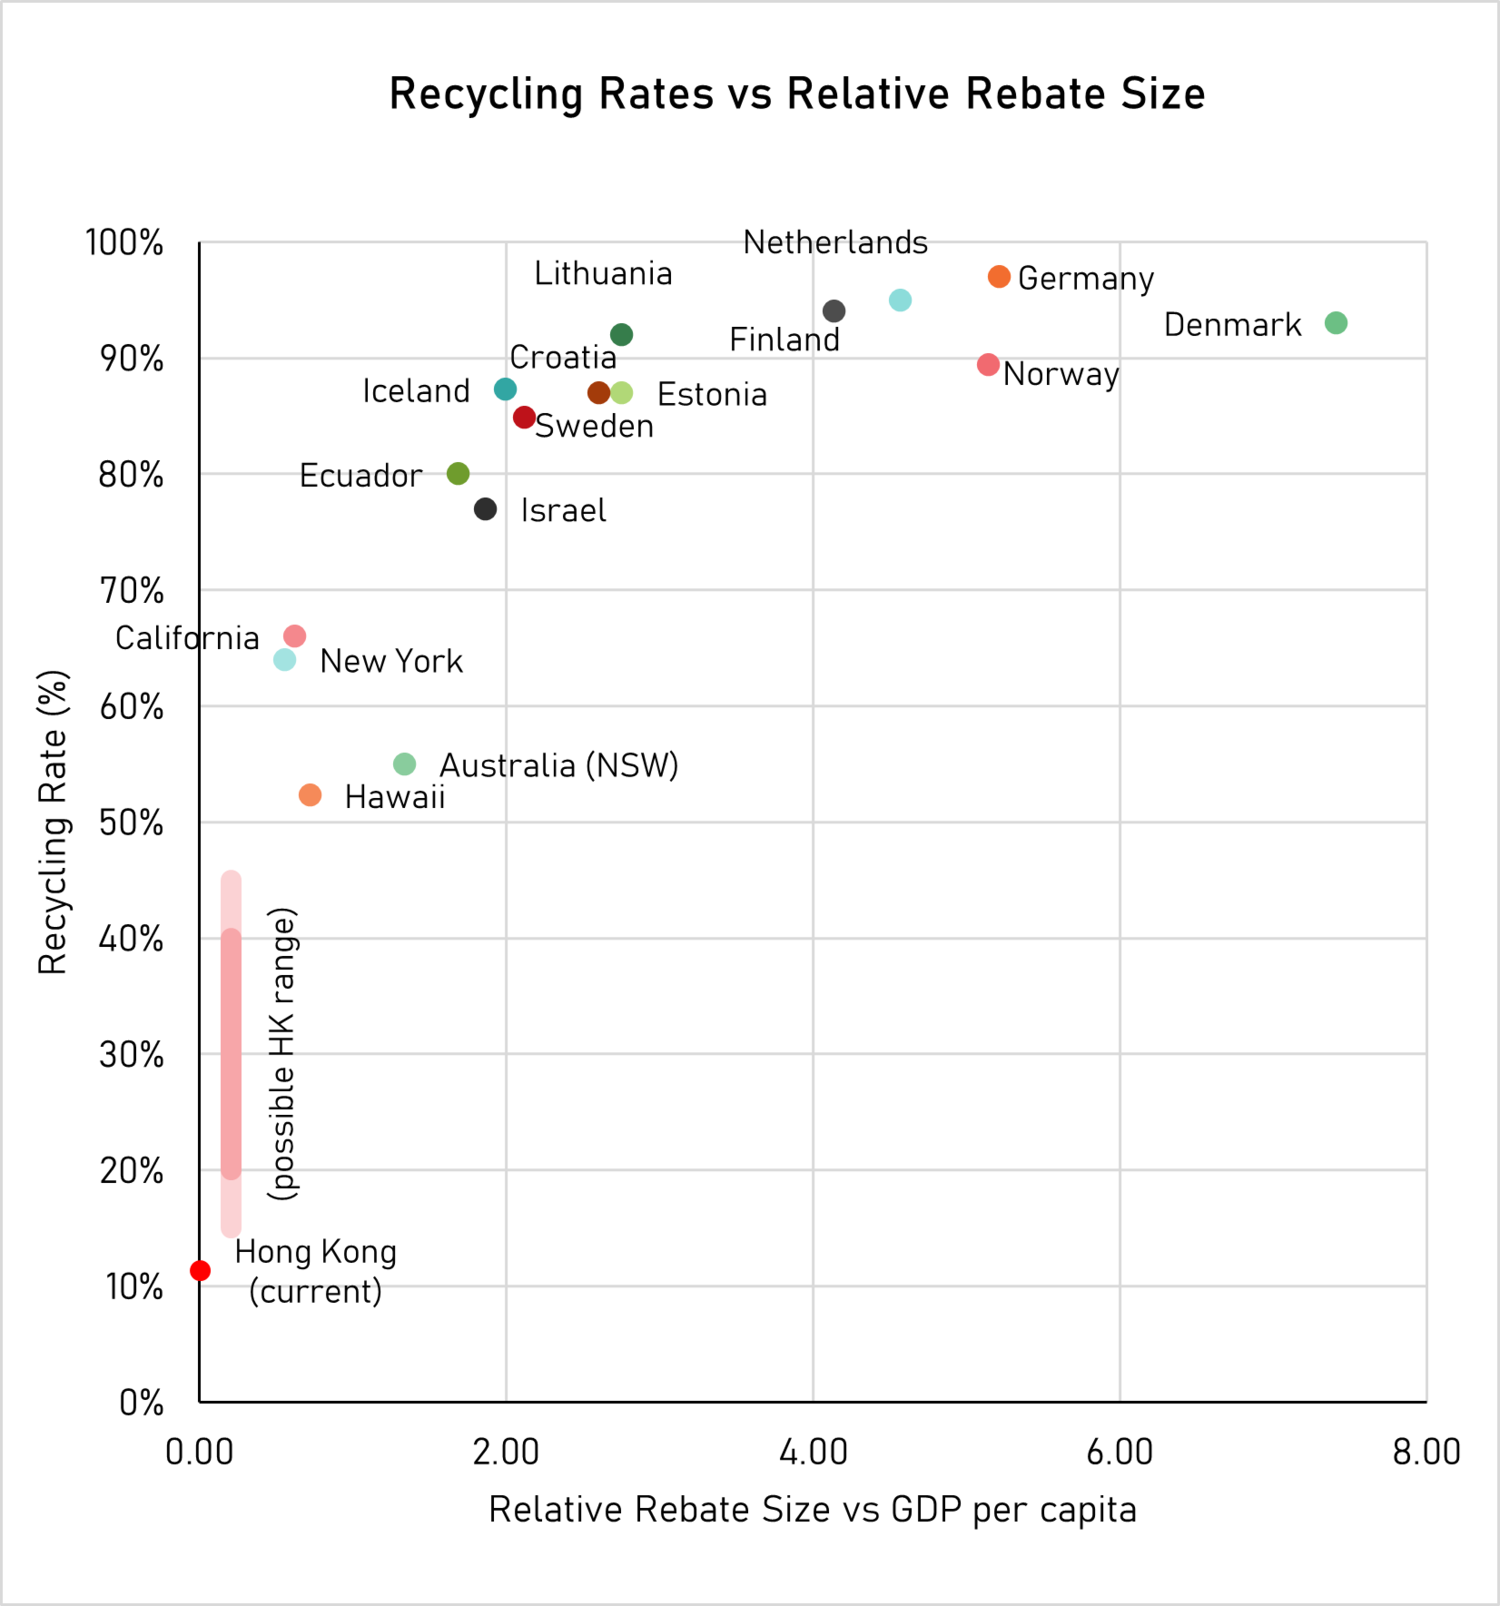 Using the data from other schemes suggests Hong Kong could expect a recycling rate of just 20 – 40%.